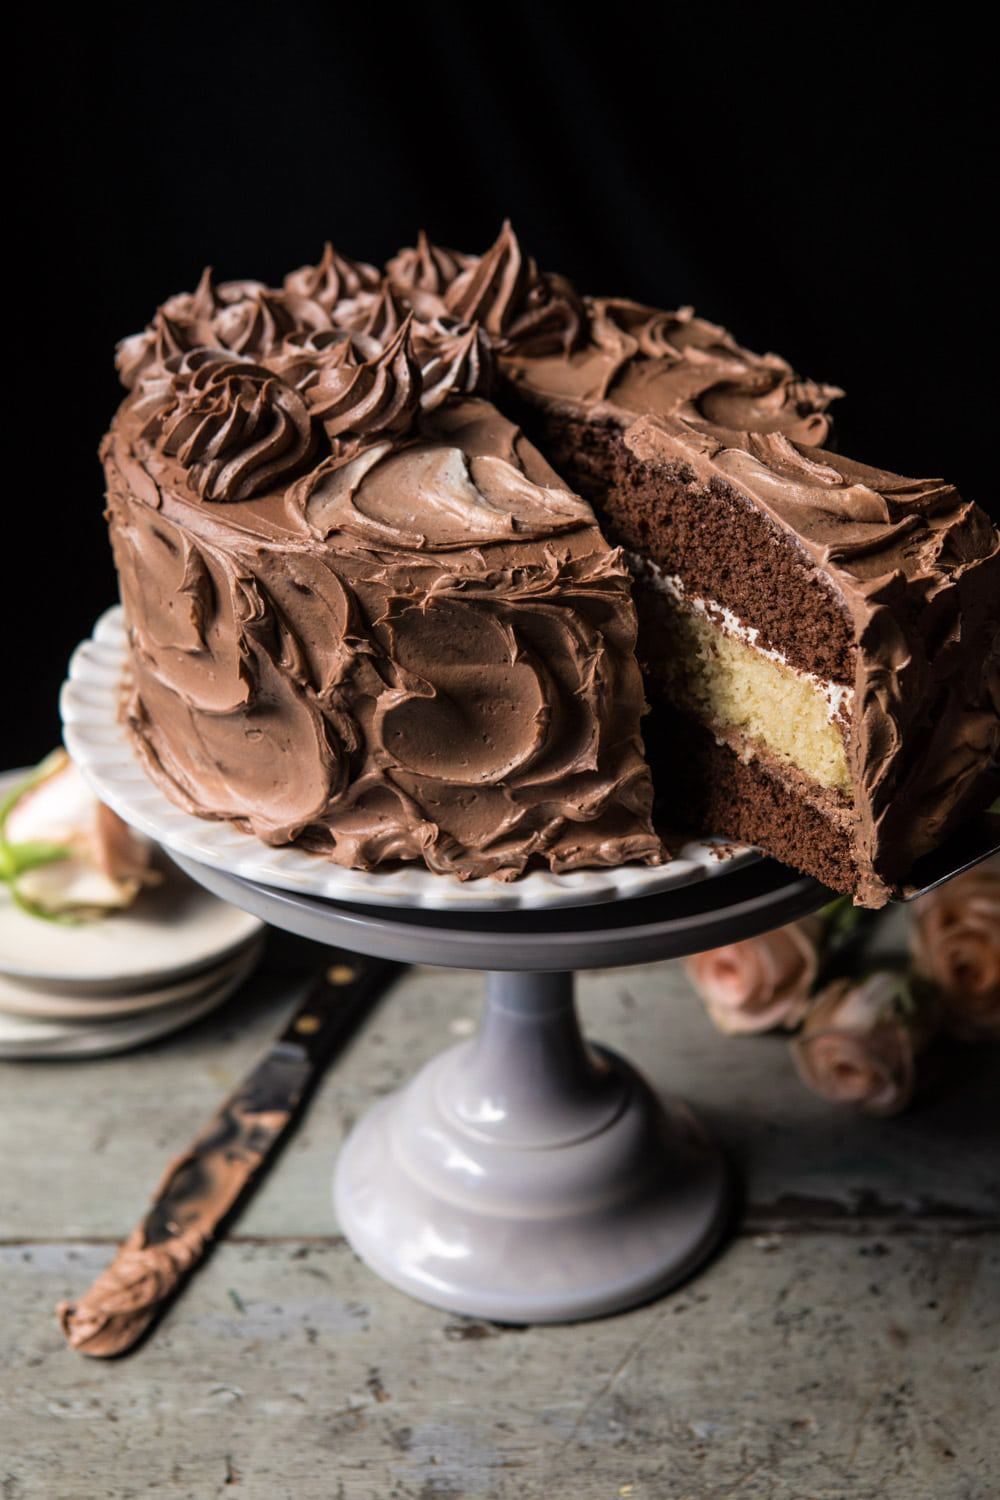 Best Chocolate Buttercream Frosting For Cake